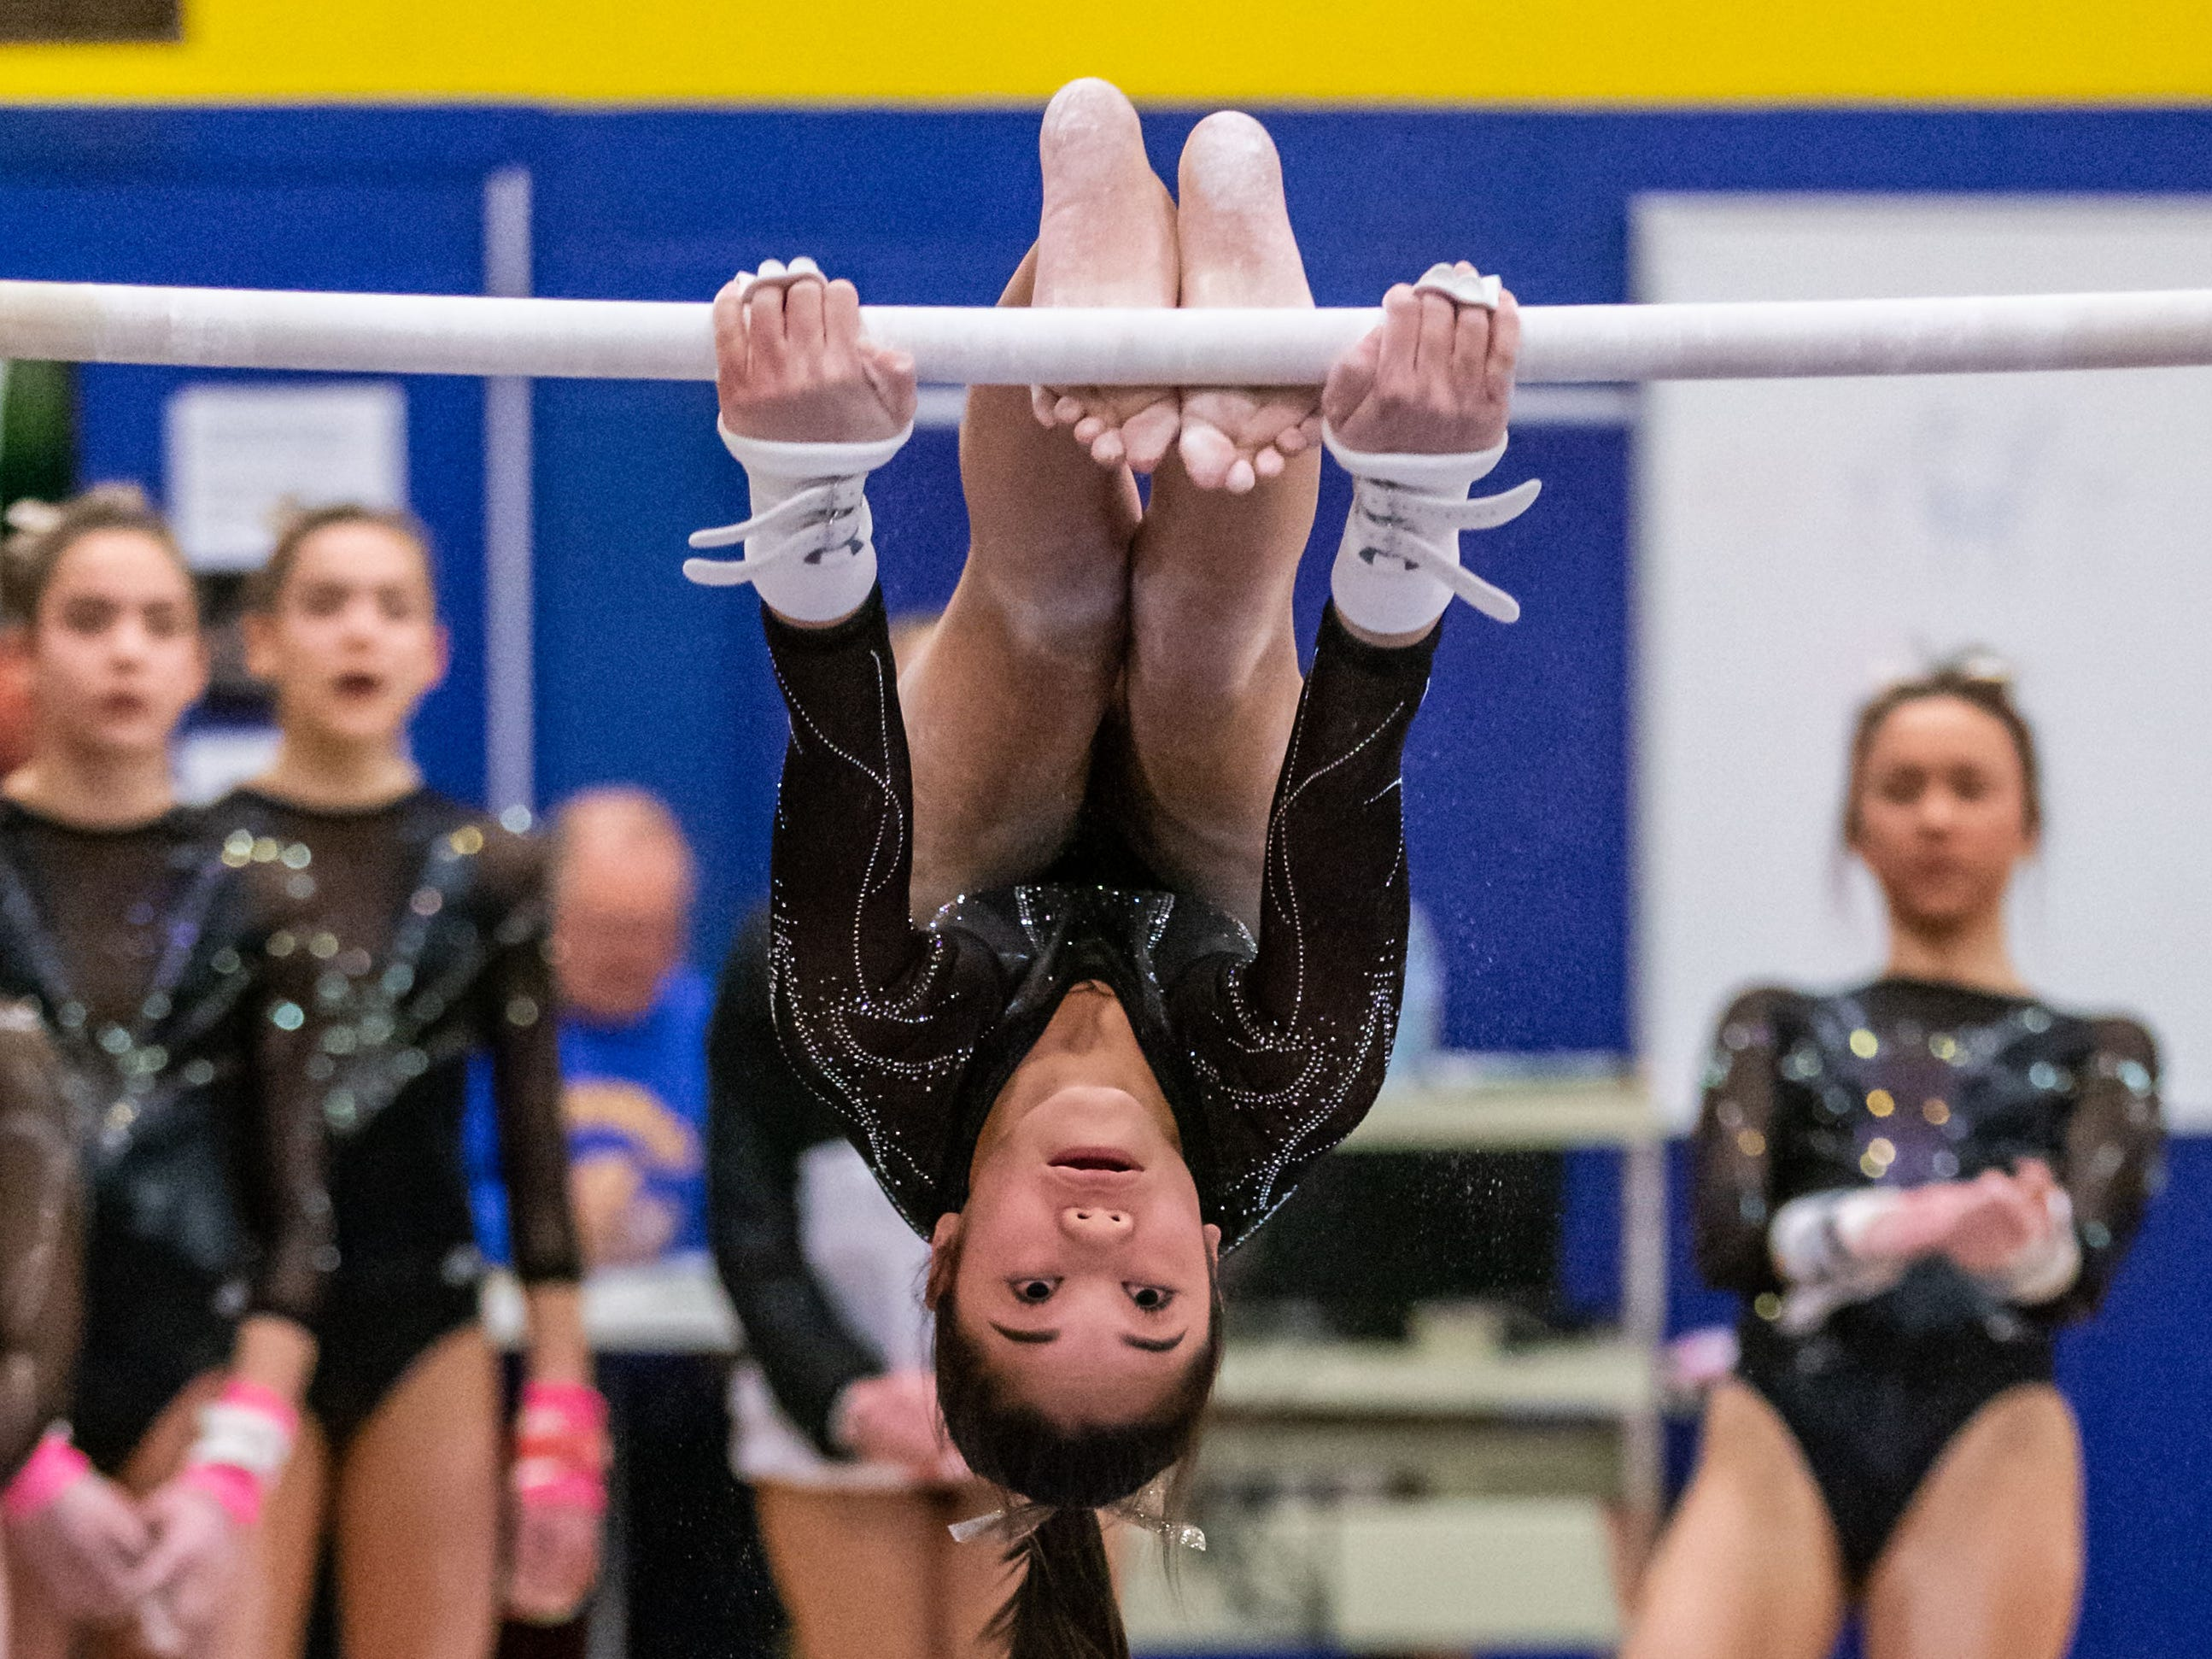 Teammates look on as Franklin/Muskego/Oak Creek/Whitnall co-op gymnast Izzy Wong competes on the bars during the Mukwonago Gymnastics Invite on Thursday, Jan. 10, 2019. Wong placed third on the event with a score of 9.150.